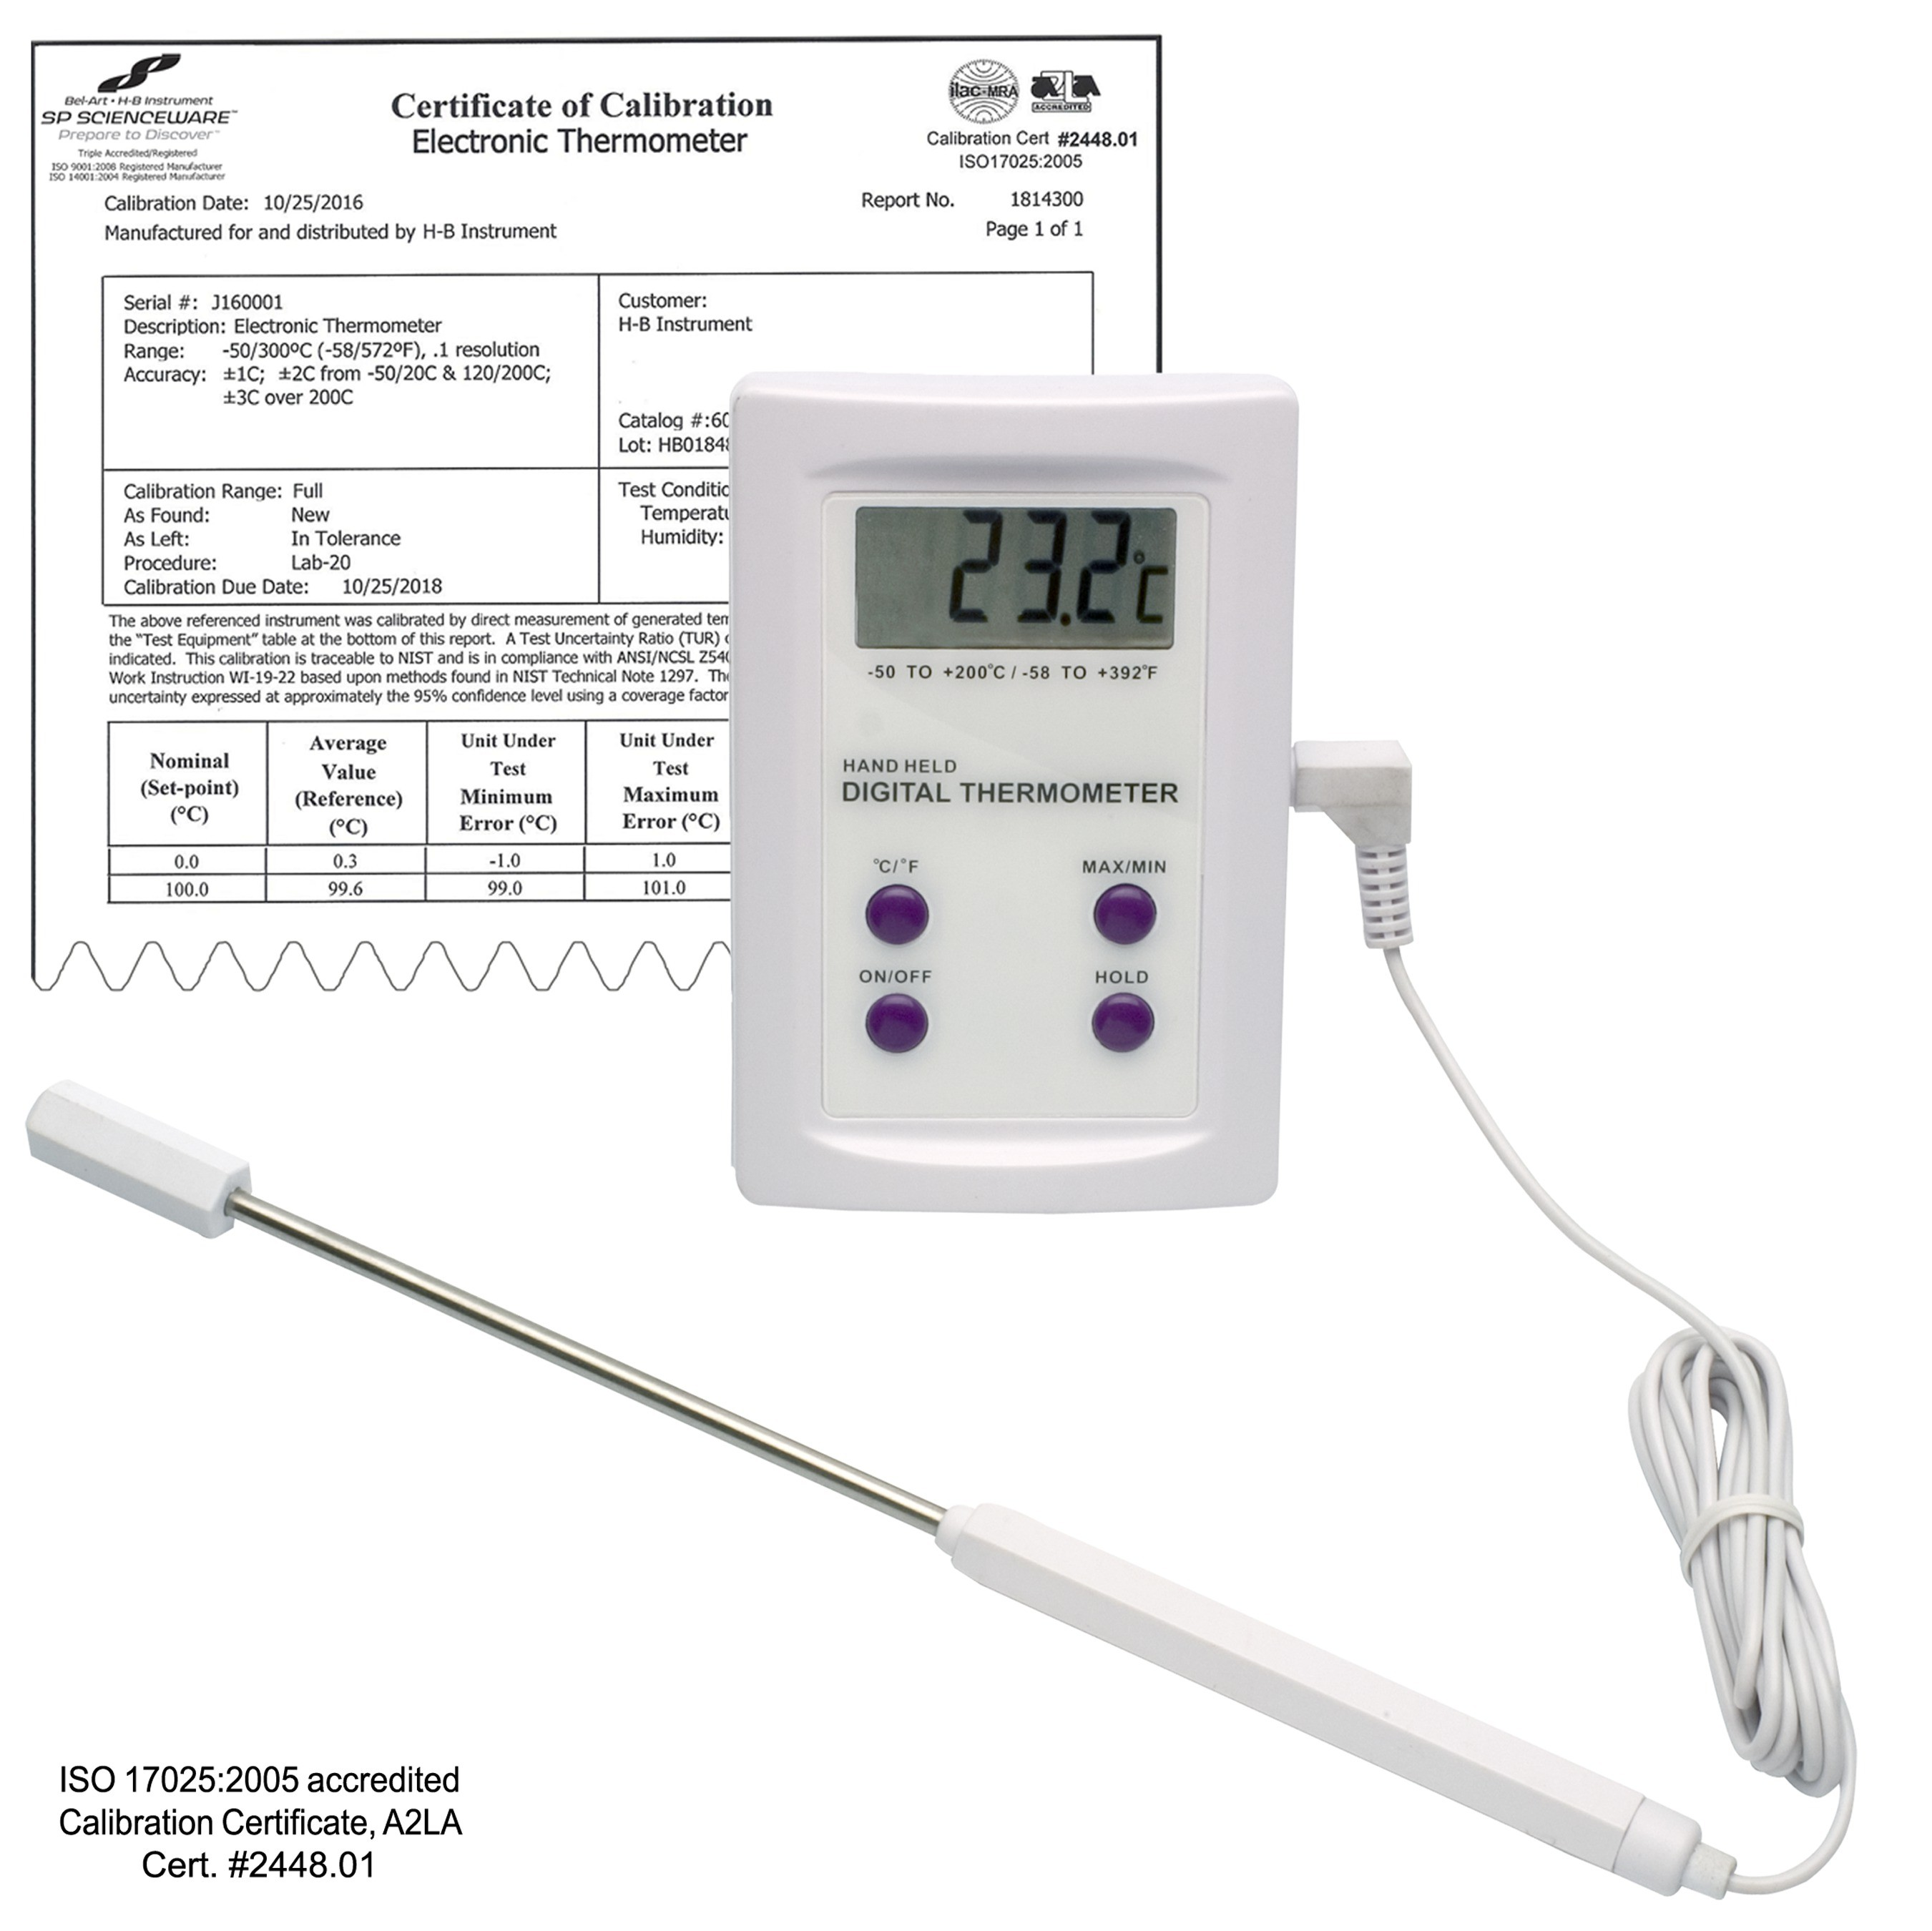 SP Bel-Art, H-B DURAC Calibrated Electronic Thermometer with Stainless Steel Probe; -50/200C (-58/392F), 63 x 97mm